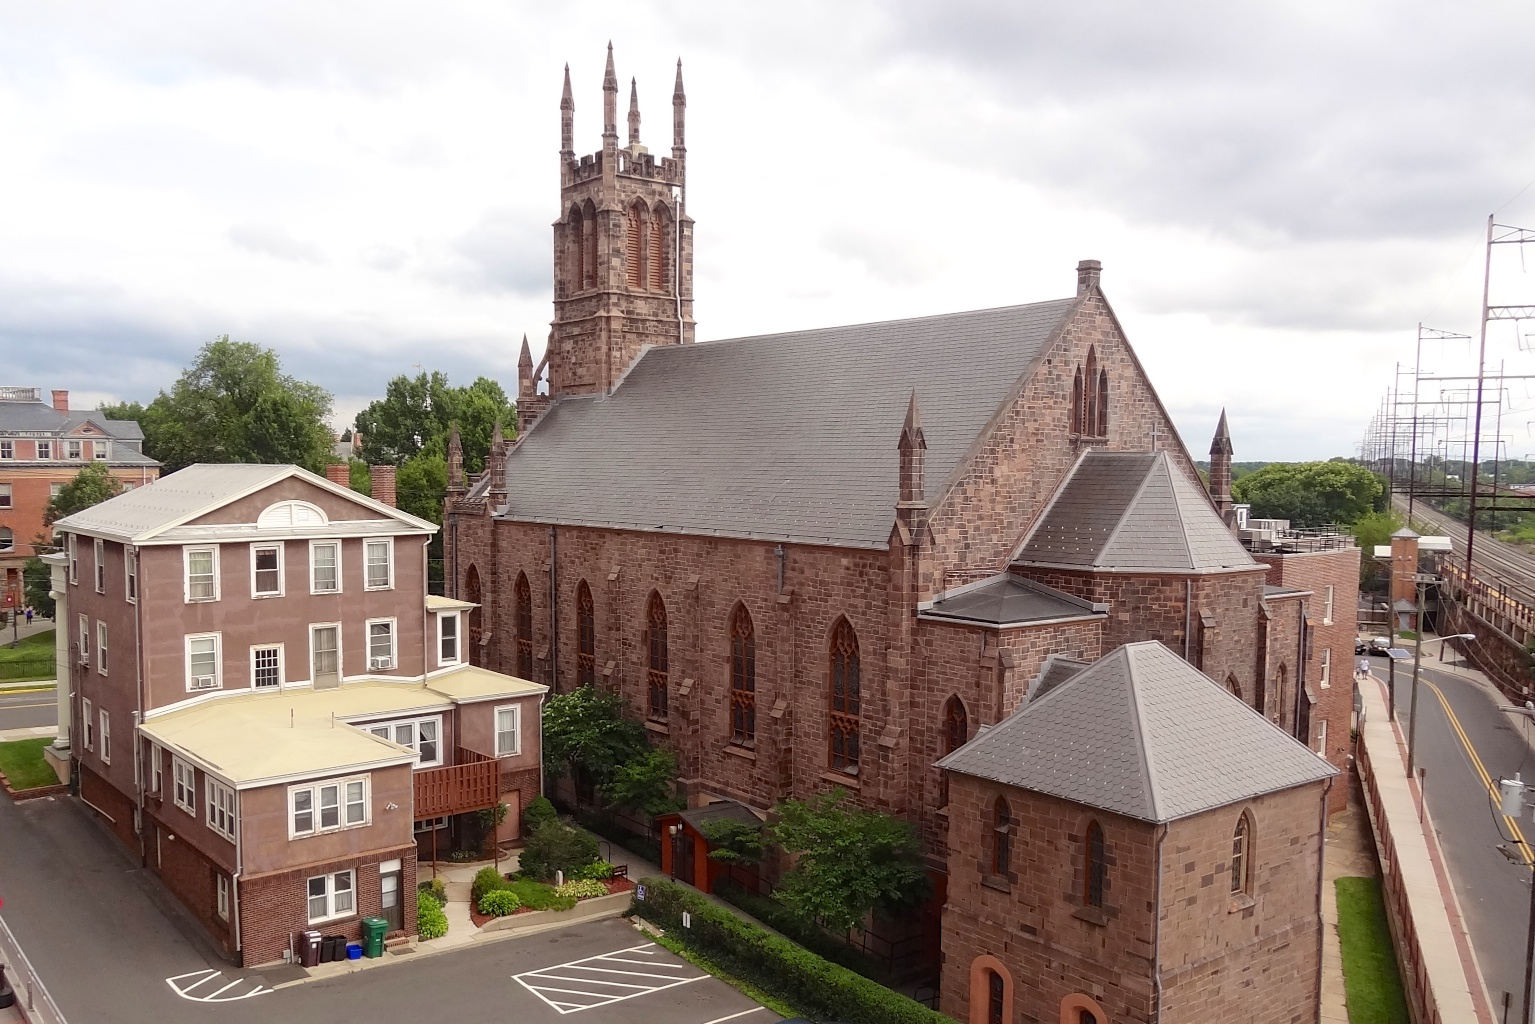 St. Peter the Apostle Church, rear, with rectory to the left (image from New Jersey Wiki).